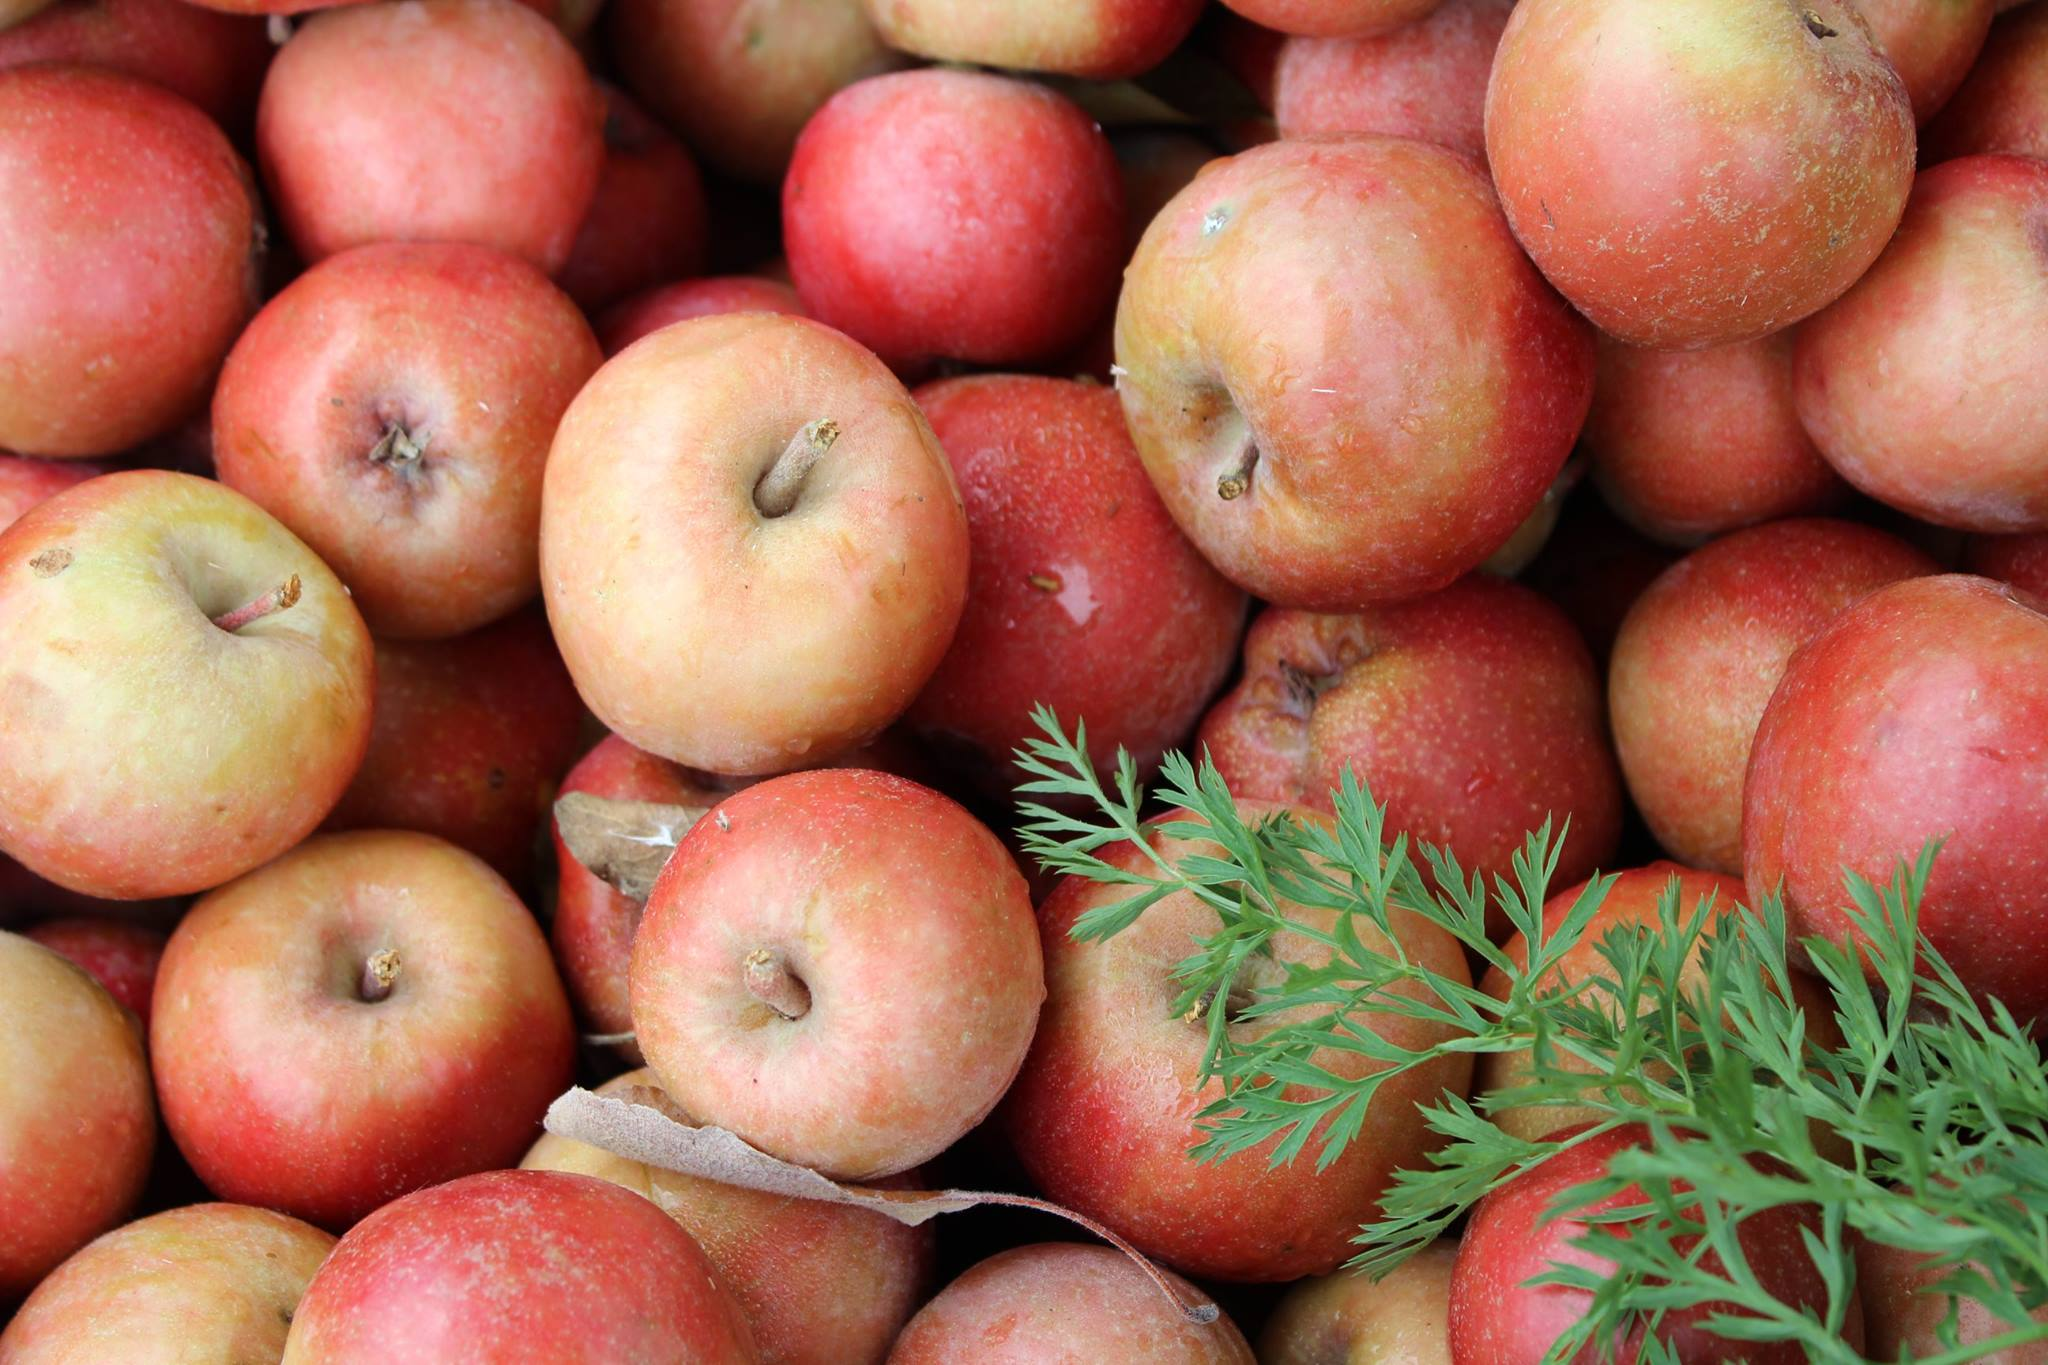 Morren Orchard - Henry Morren and his family produce dozens of varieties of heritage apples, showcasing all of the many things an apple can be.